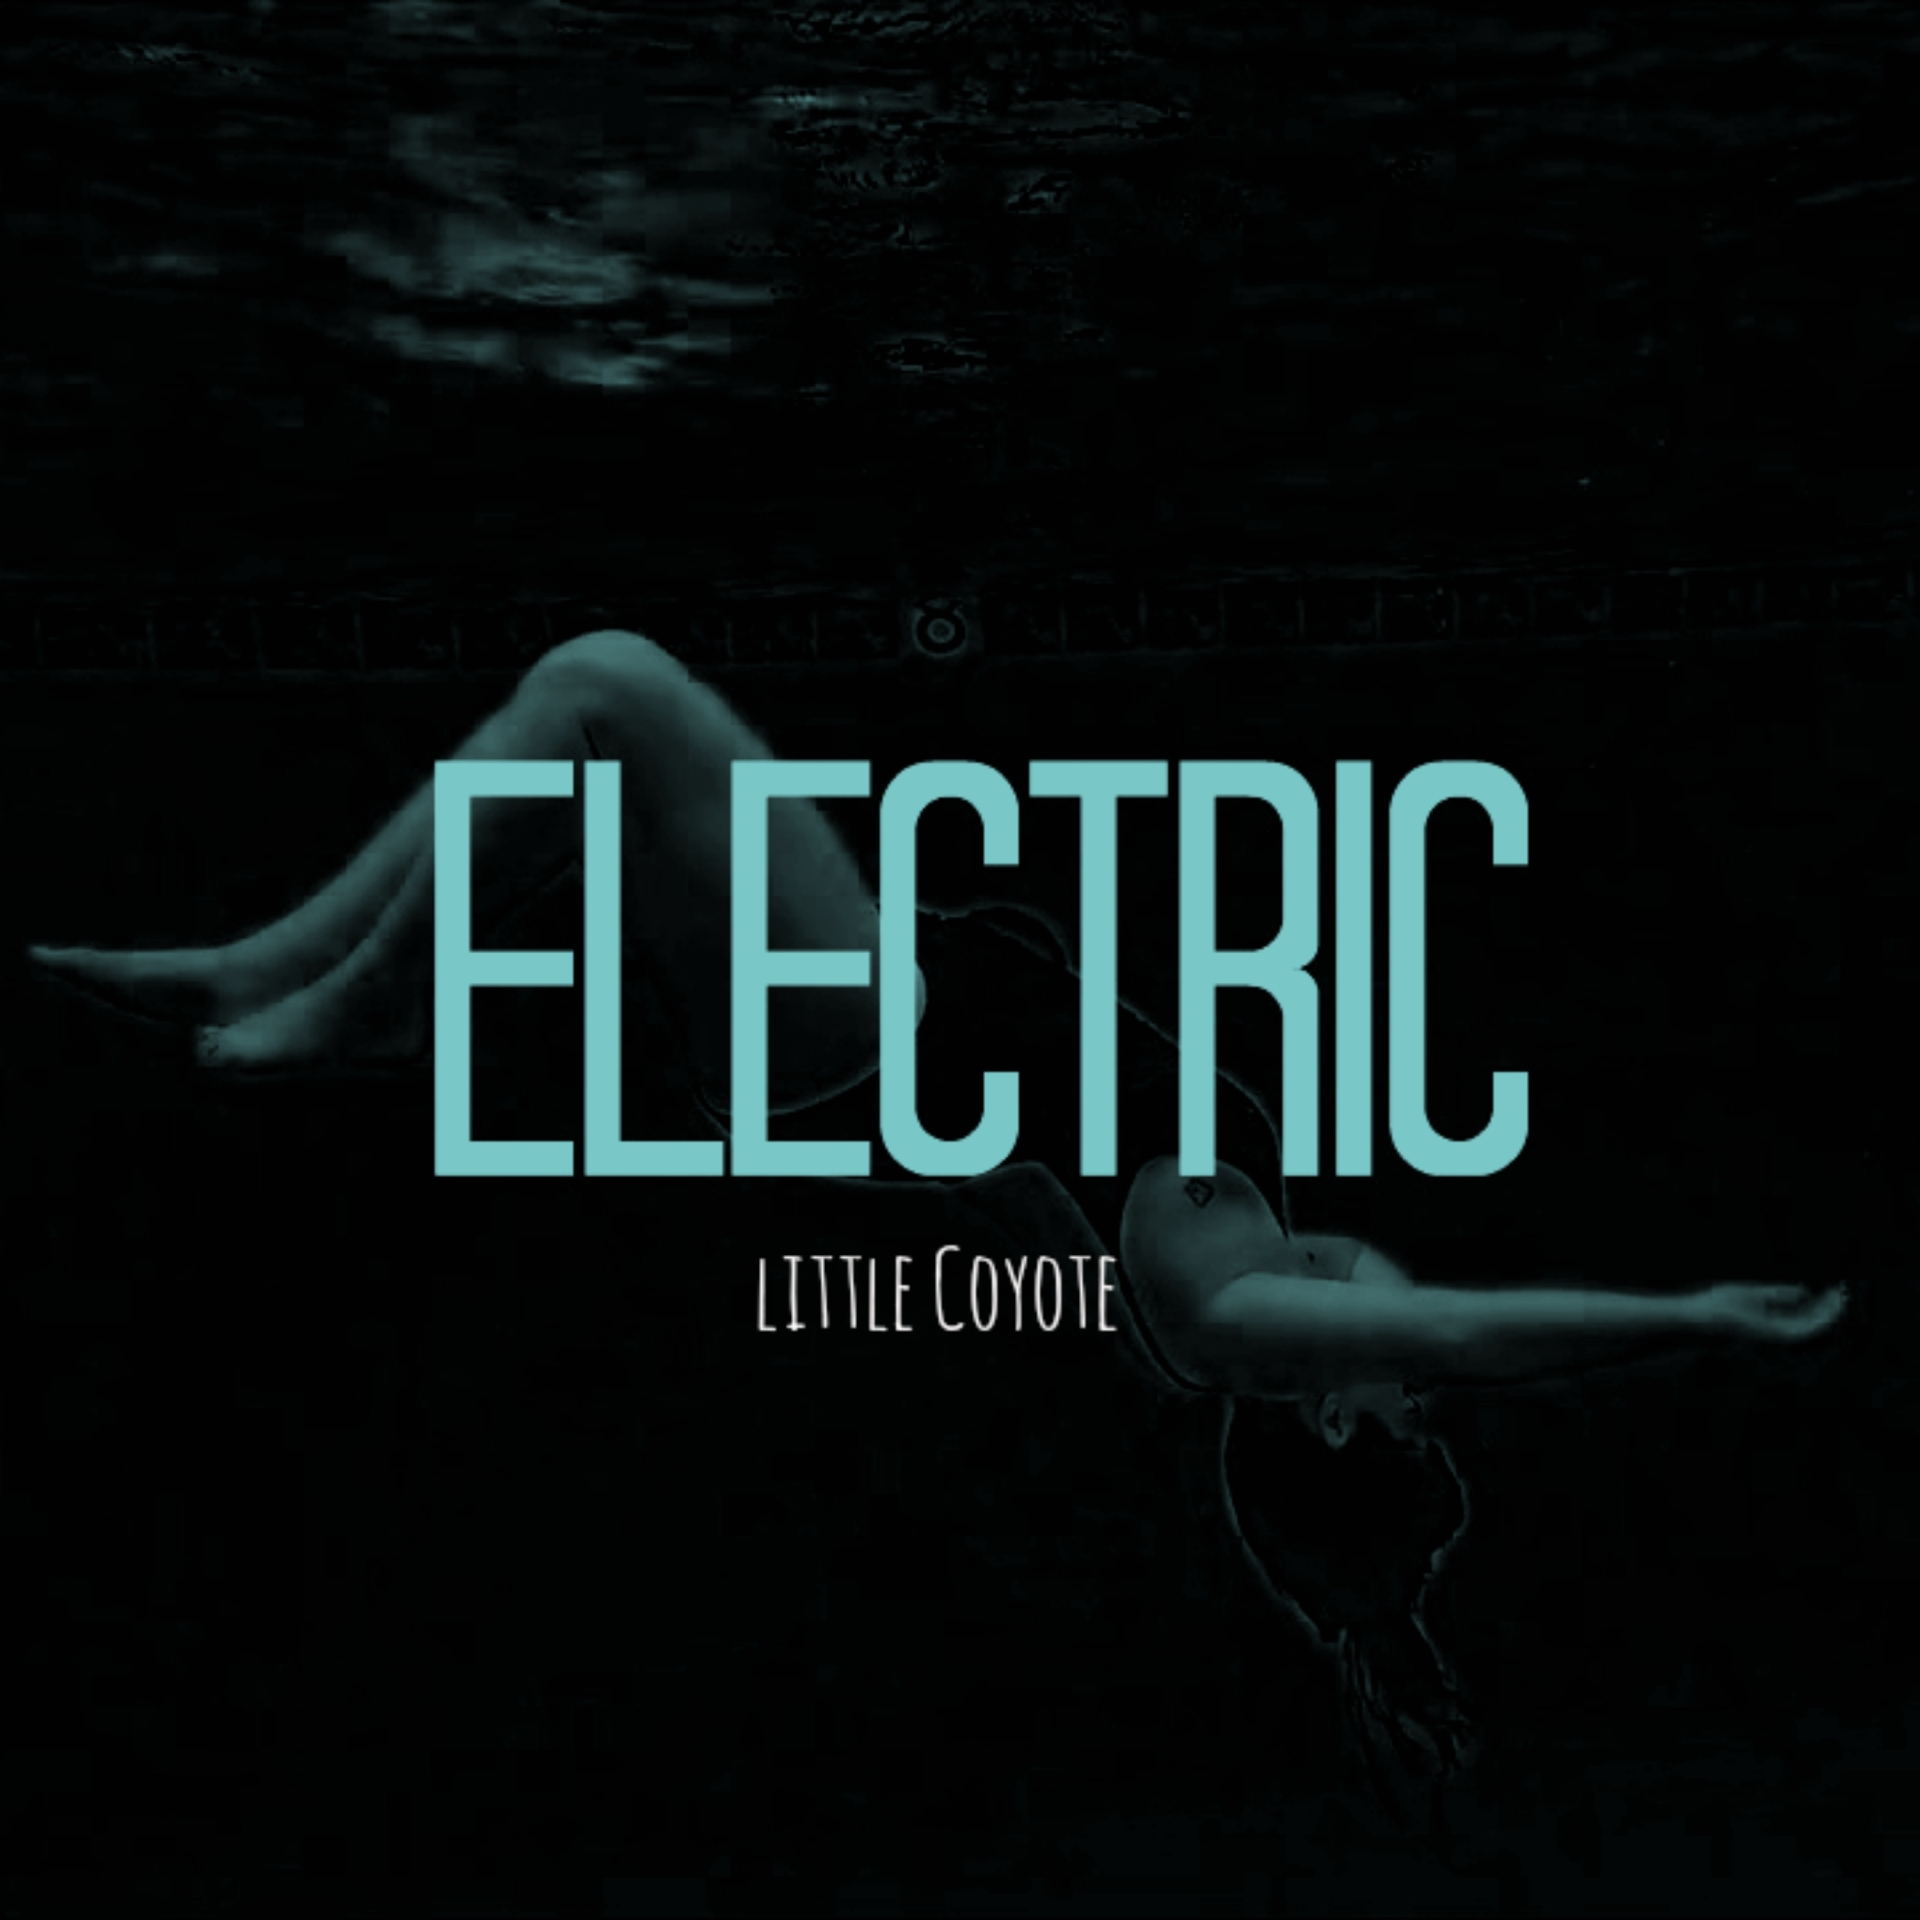 Electric Cover Little Coyote - 1.7MB